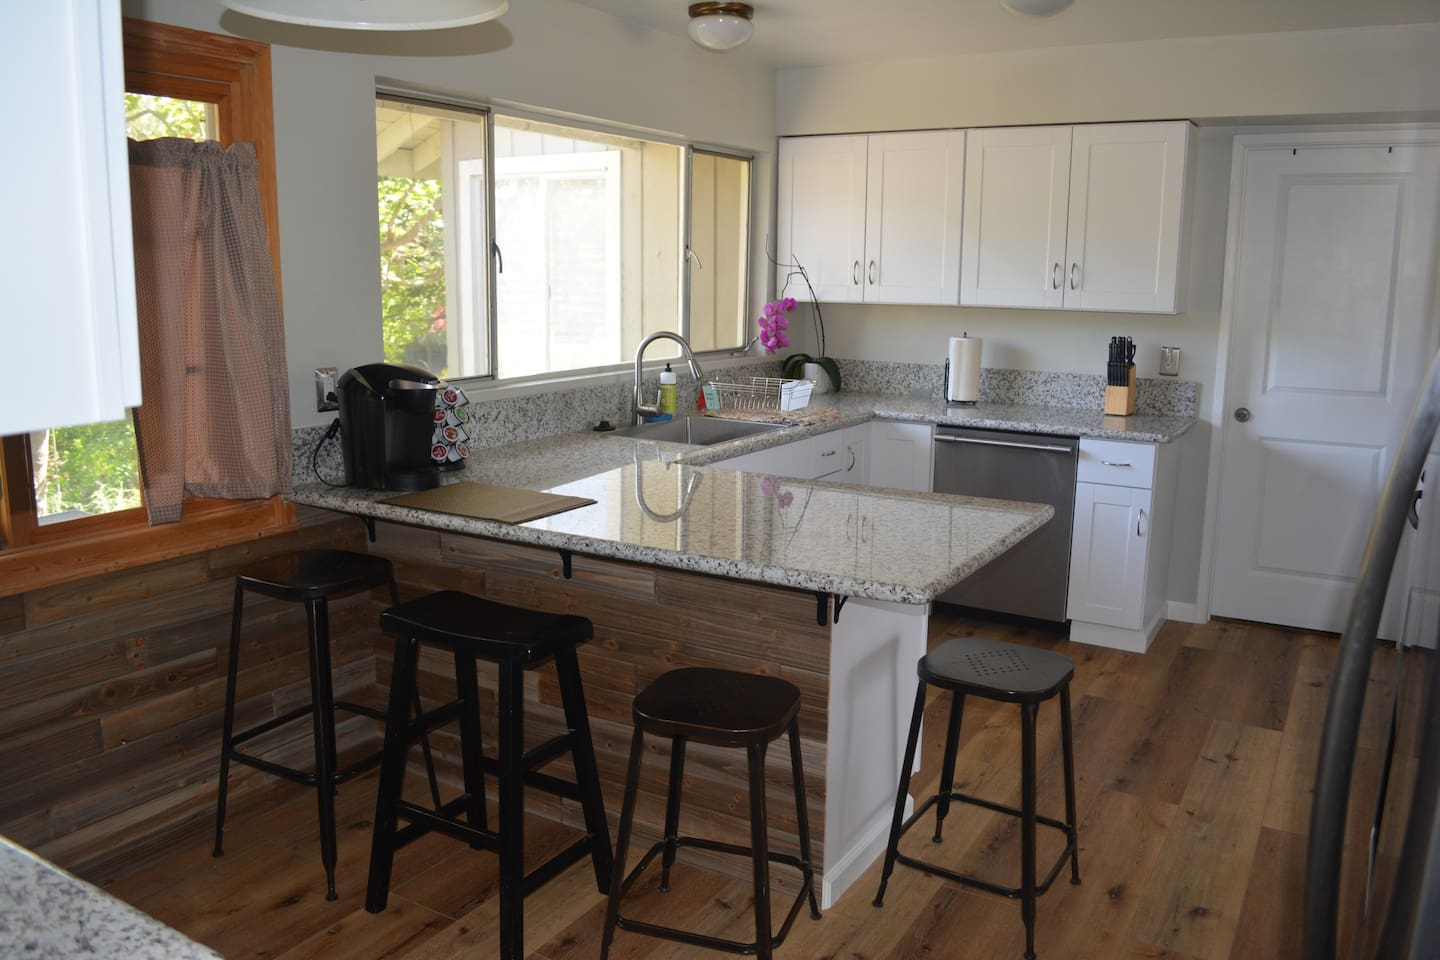 Gorgeous, newly remodeled kitchen with granite countertops and Keurig coffee maker. Counter seating for 4.